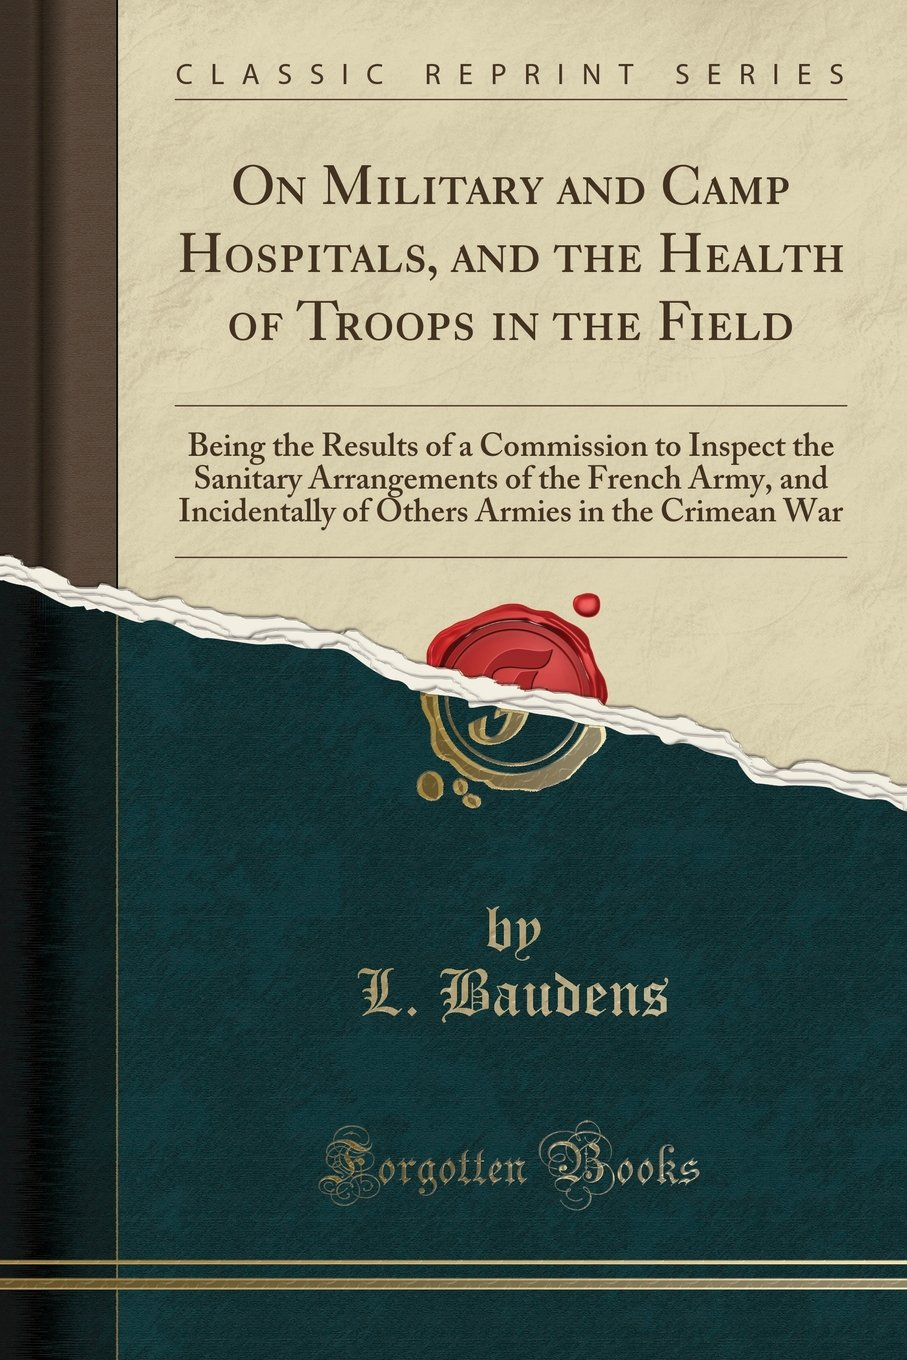 Read Online On Military and Camp Hospitals, and the Health of Troops in the Field: Being the Results of a Commission to Inspect the Sanitary Arrangements of the ... Armies in the Crimean War (Classic Reprint) PDF